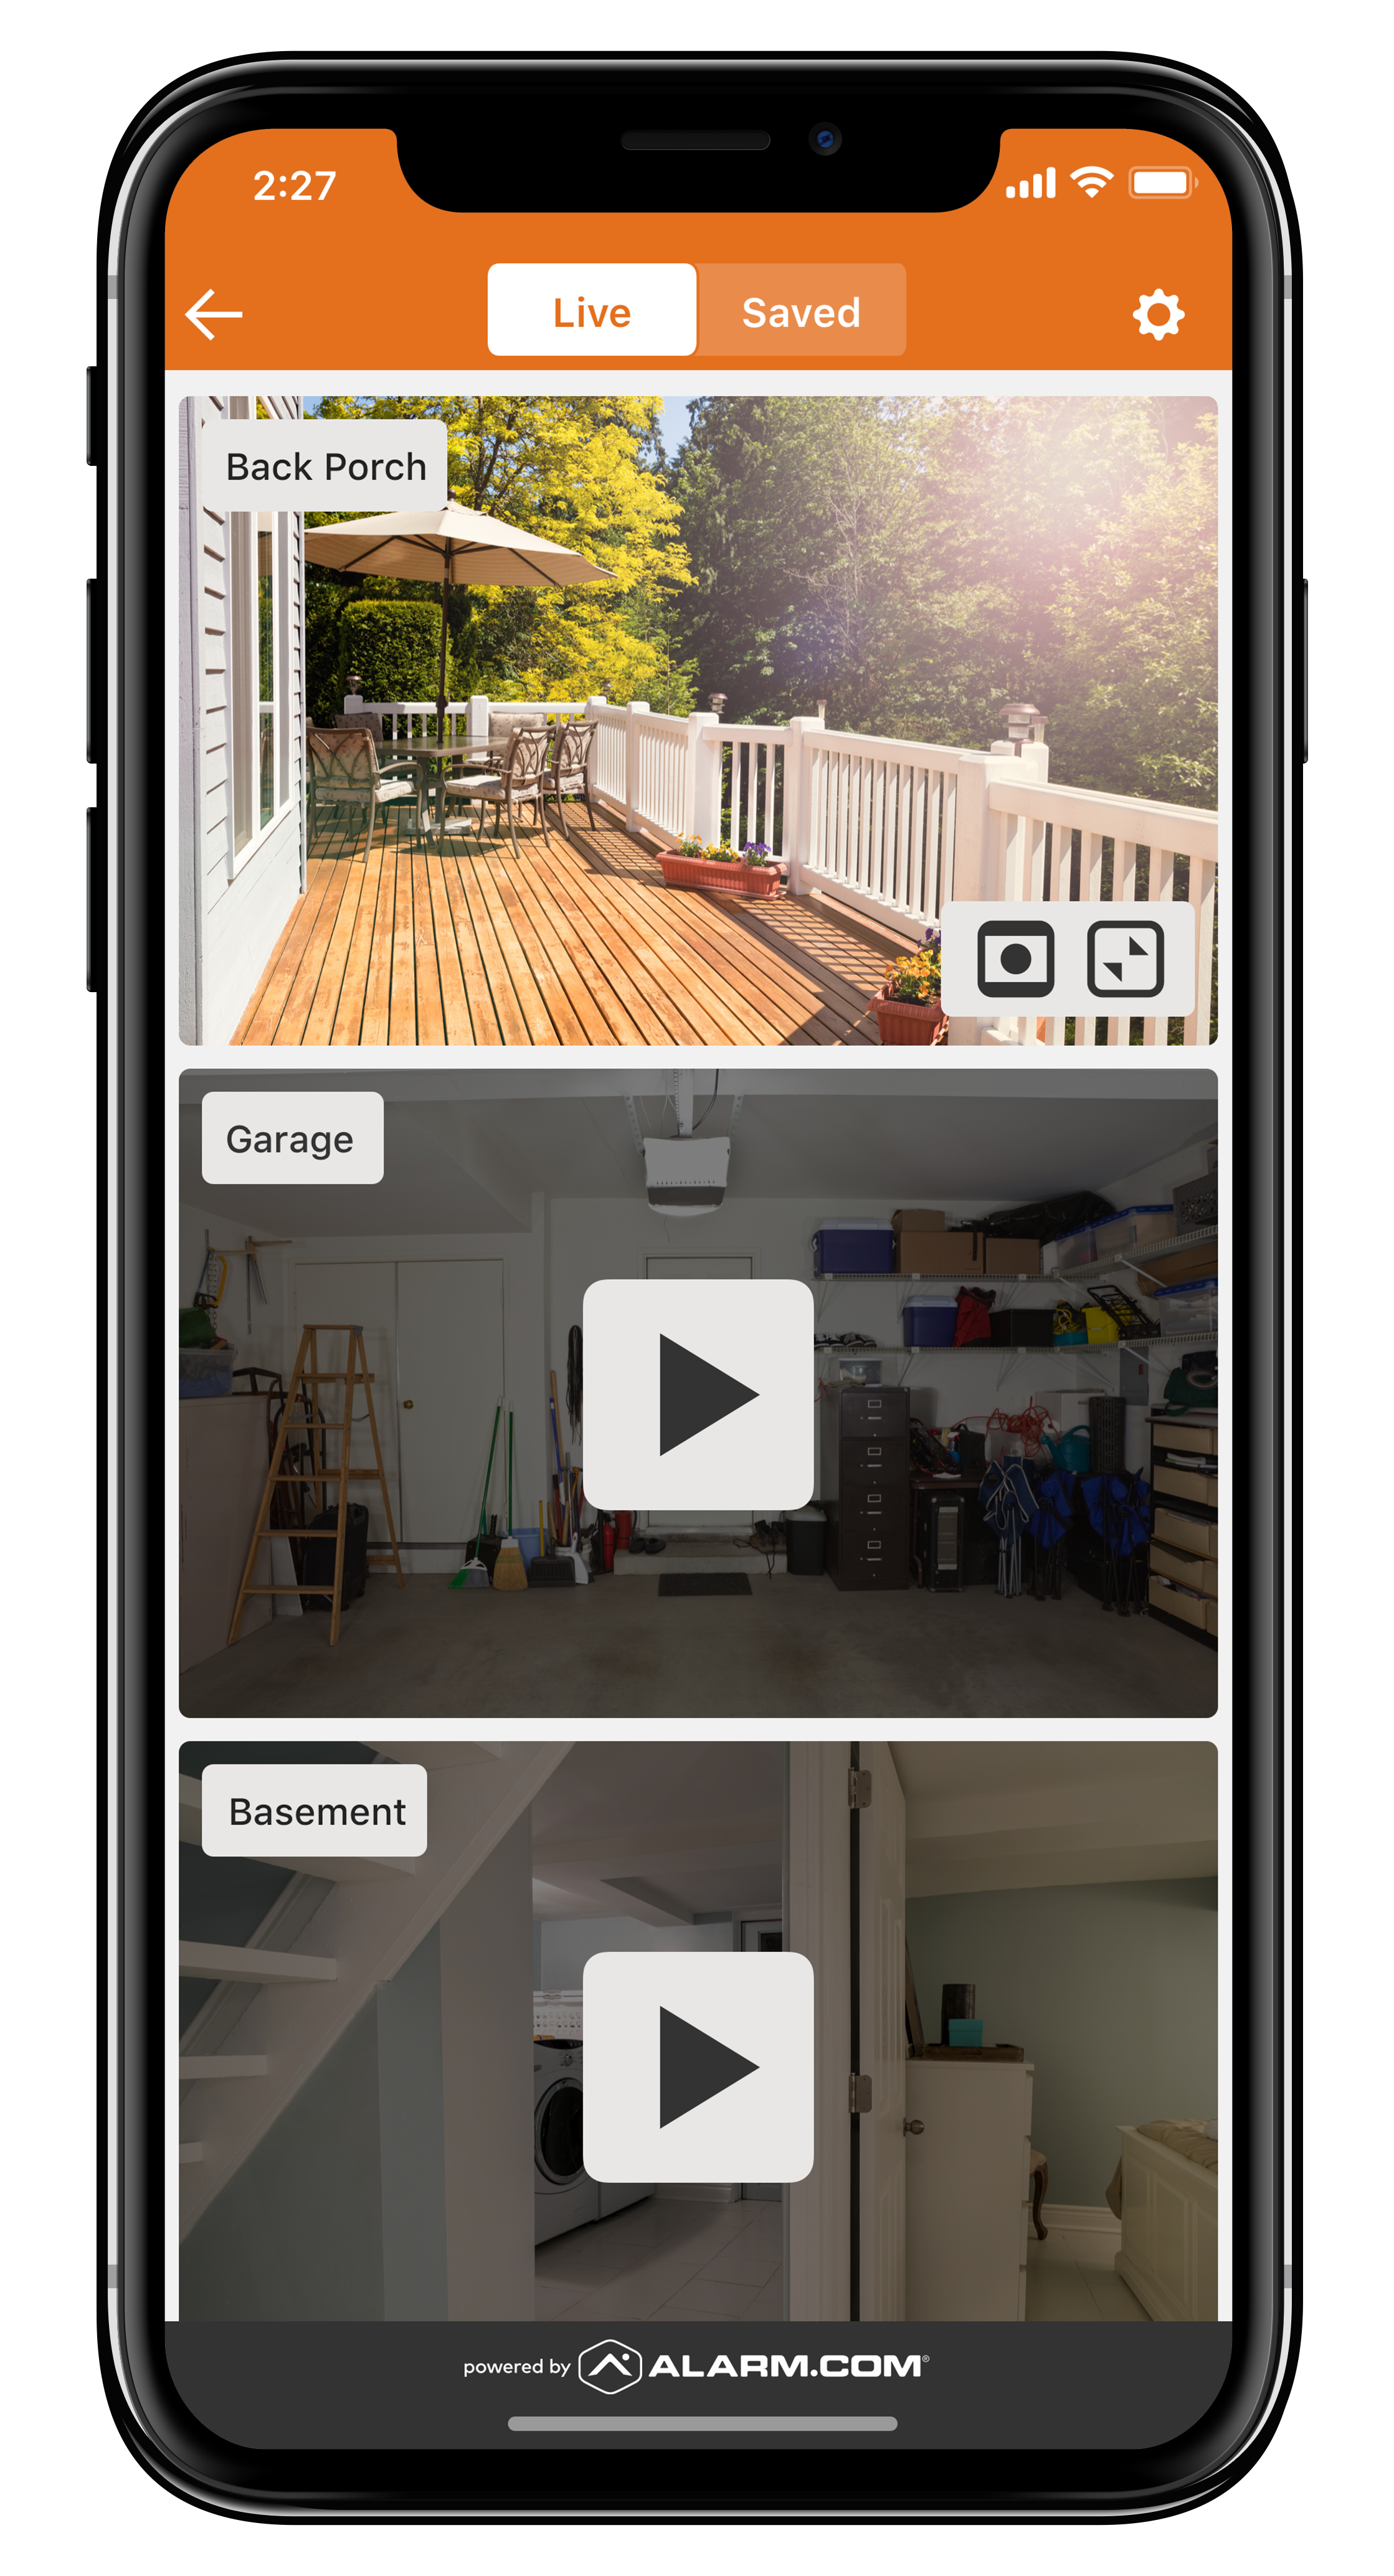 outdoor security cameras viewed from an iphone